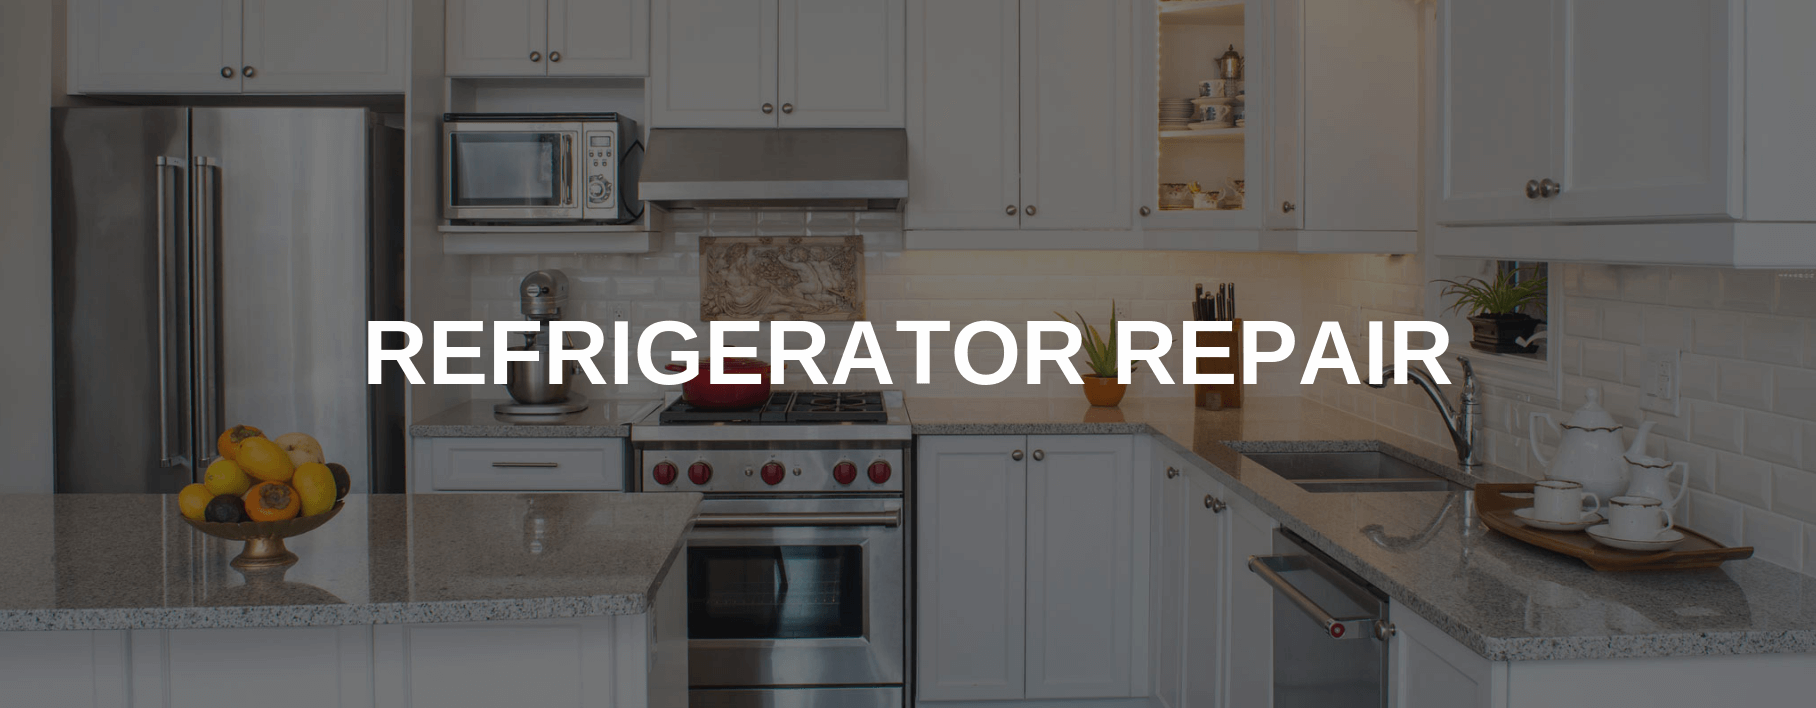 refrigerator repair missouri city